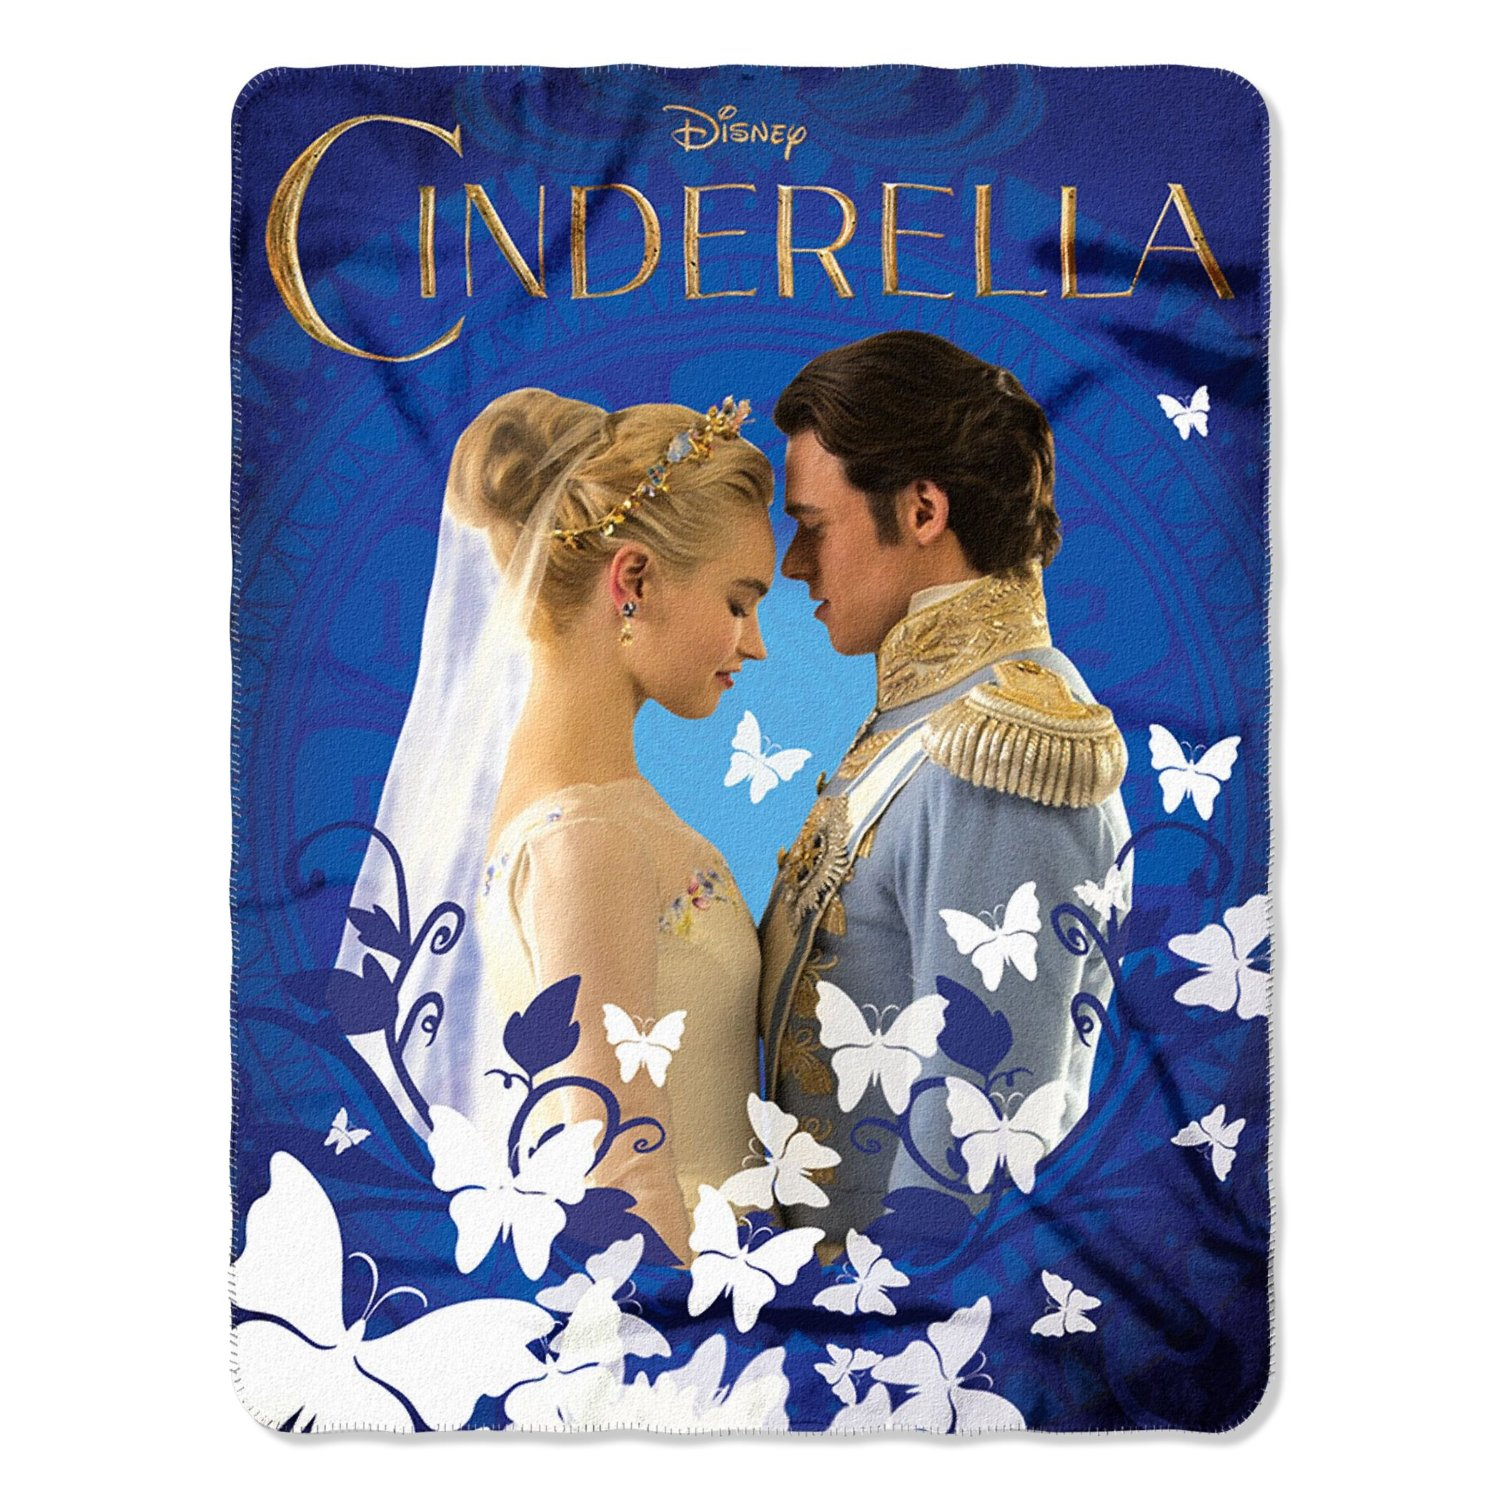 Cinderella Royal Couple 46x60 Soft Fleece Throw Blanket